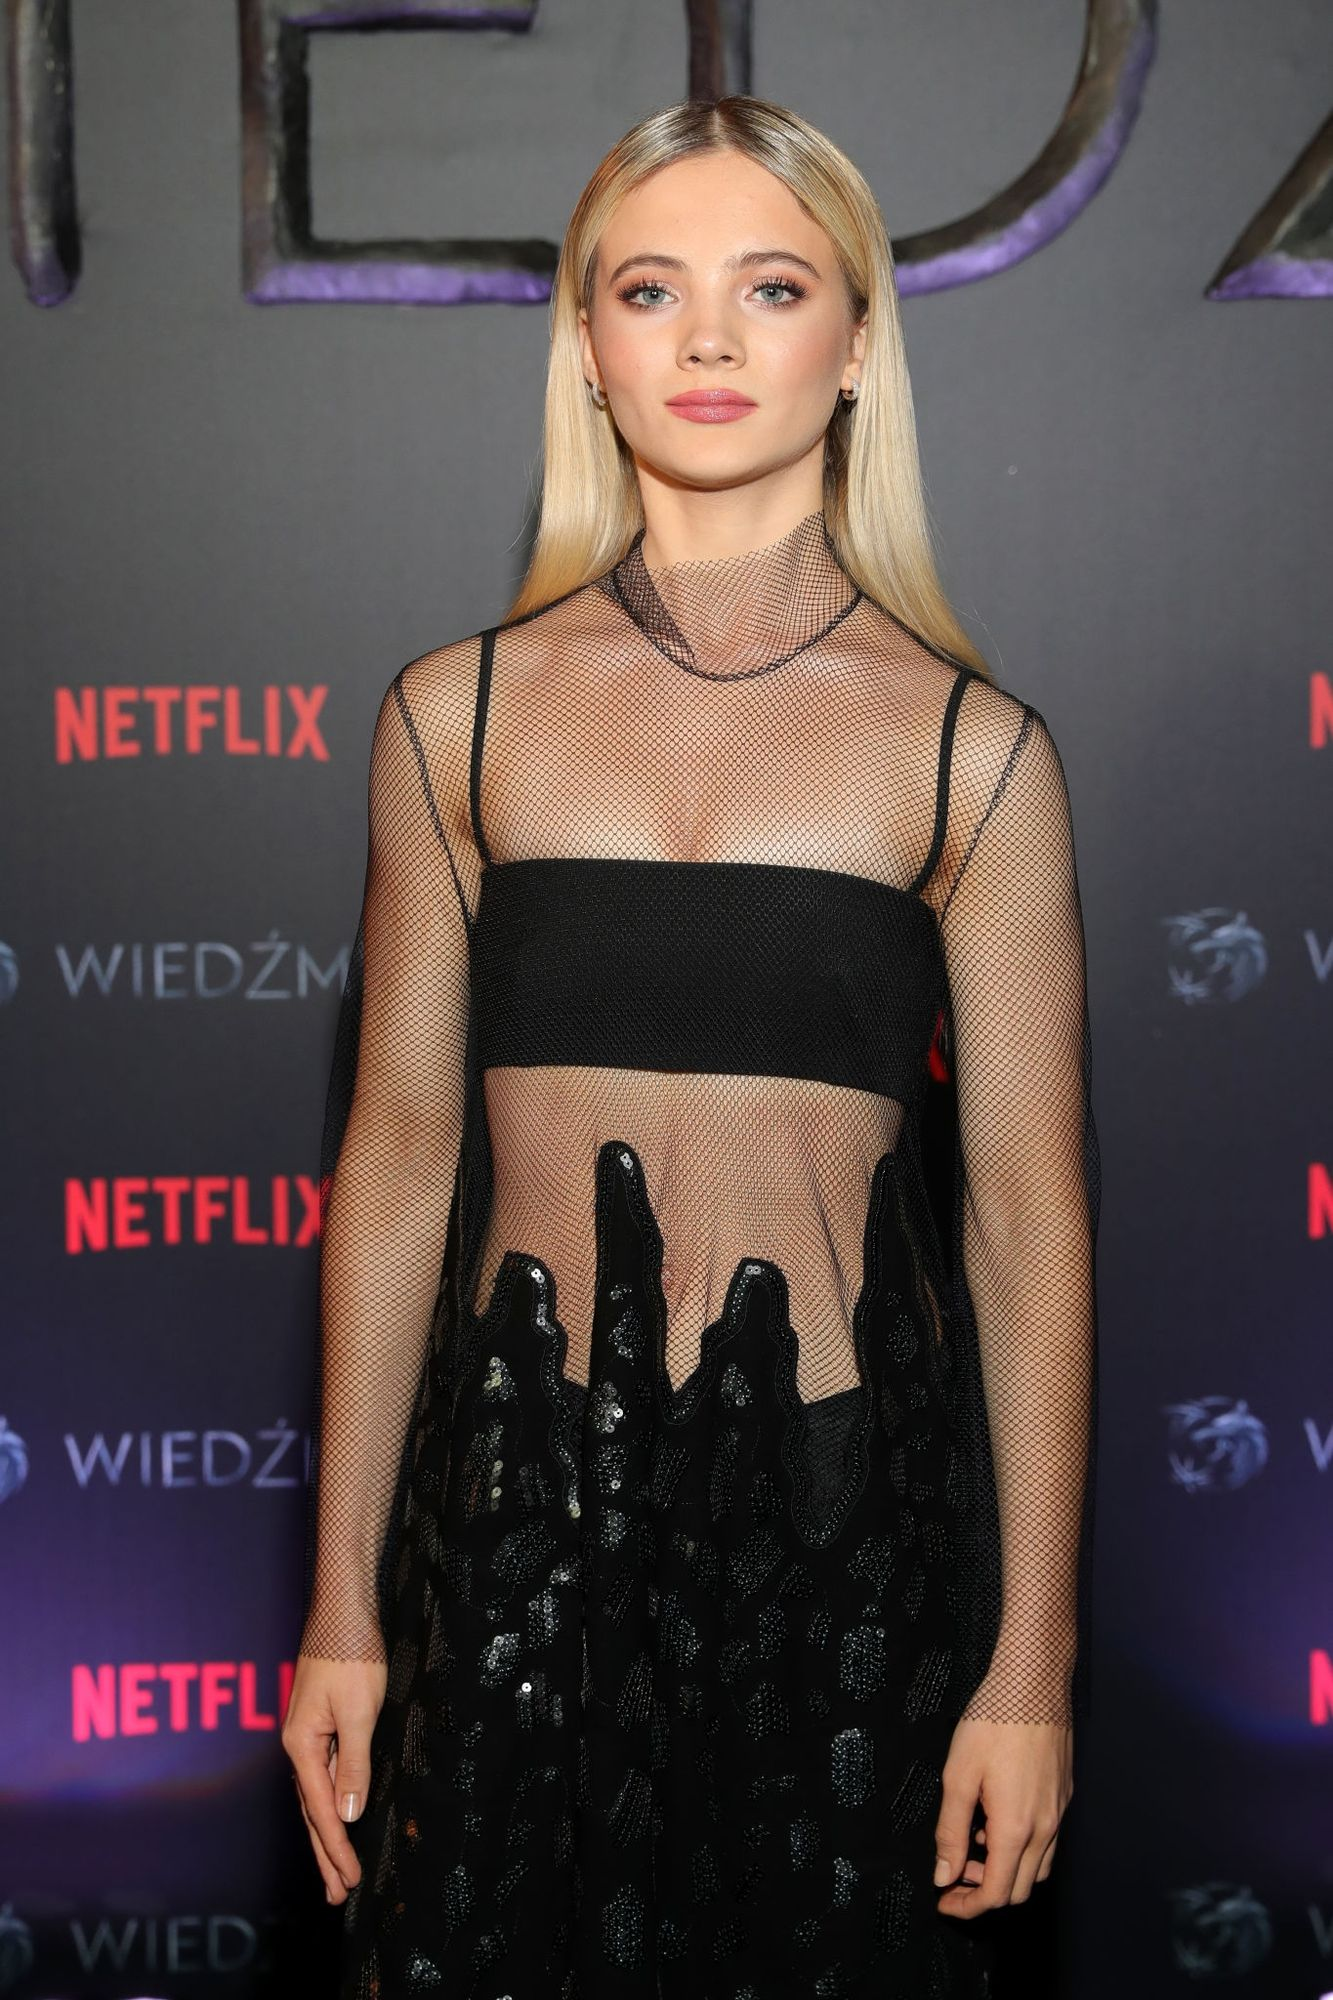 Freya Allan at The Witcher Premiere in Warsaw